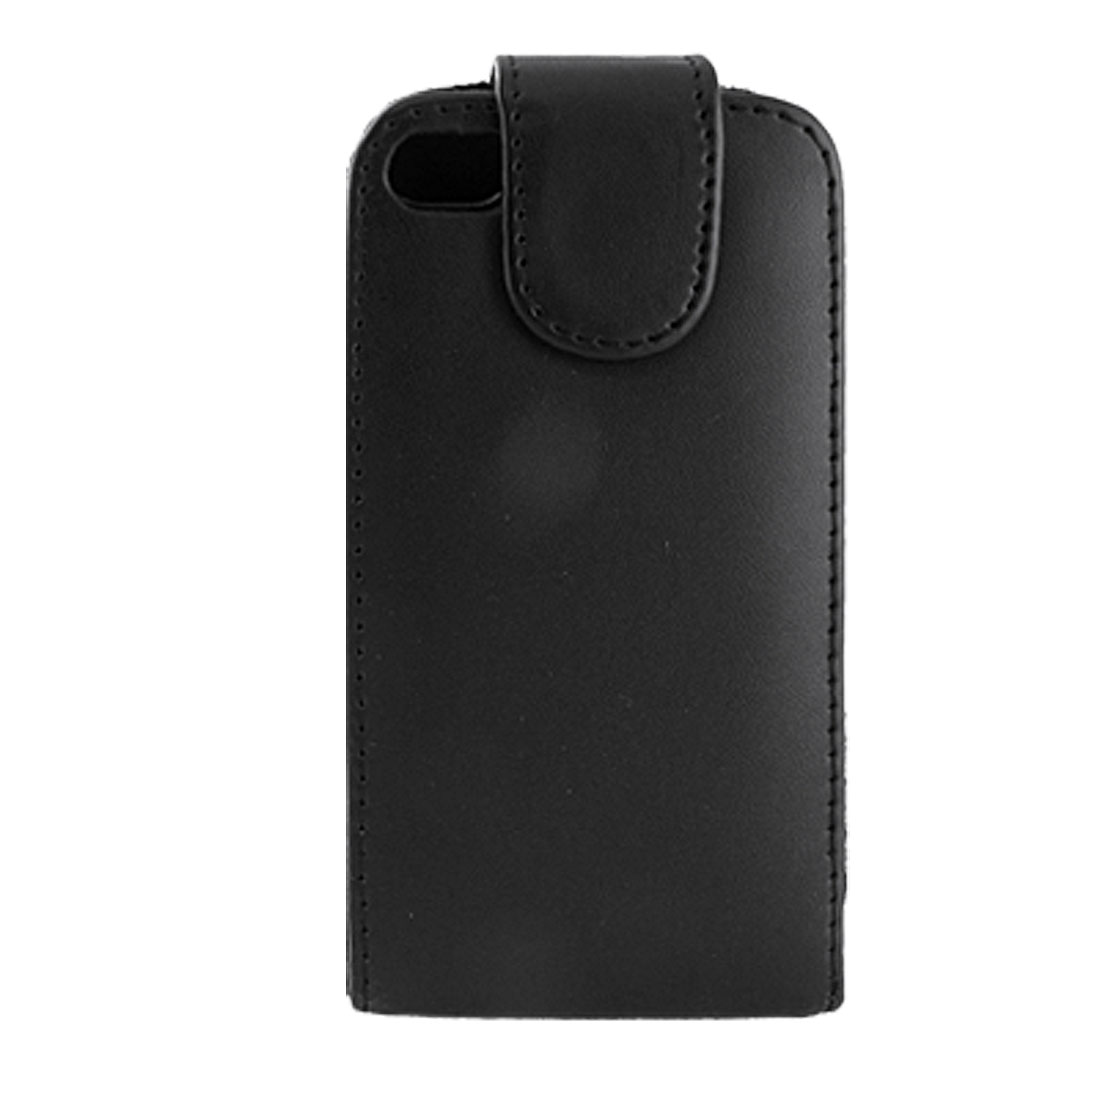 Black Flip Flap Vertical Faux Leather Pouch Case for iPhone 4 4G